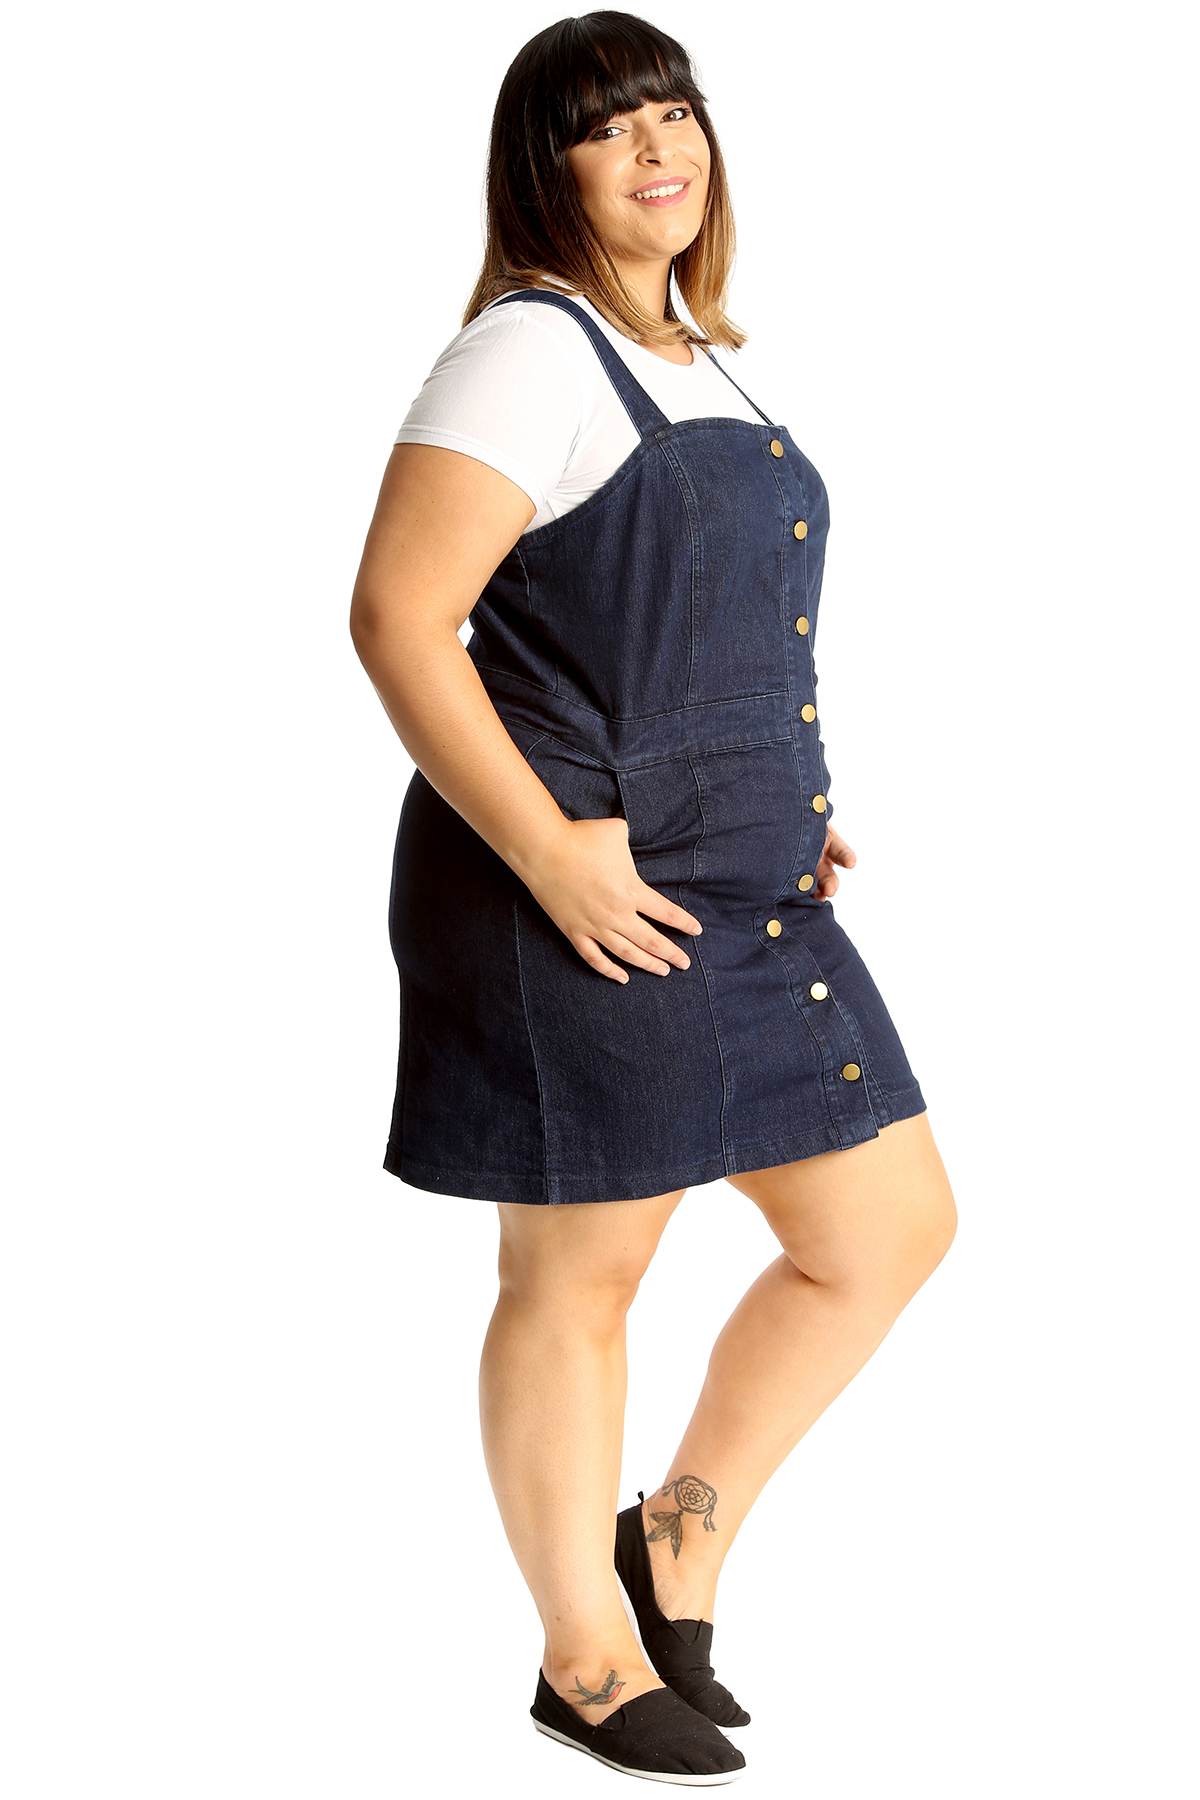 most reliable really cheap top-rated official Details about New Ladies Plus Size Dungaree Dress Womens Jeans Style Pocket  Denim Top Nouvelle